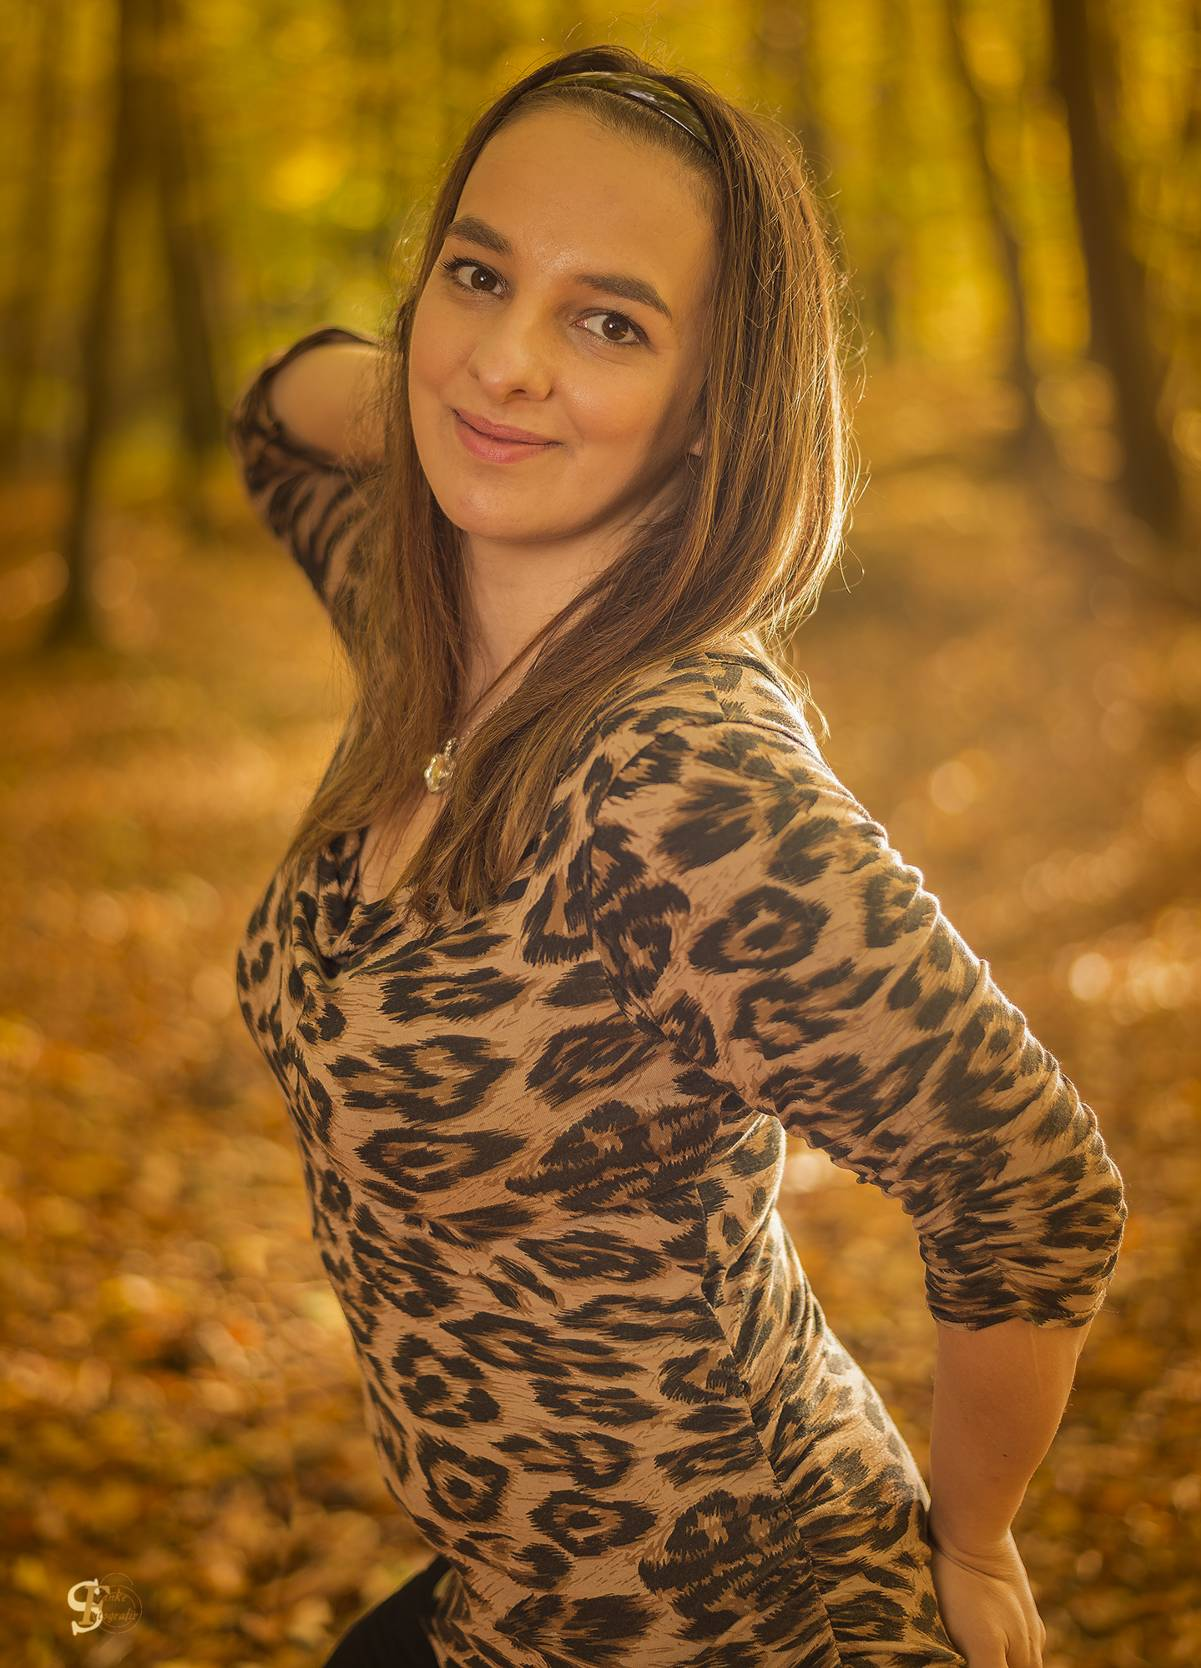 Shooting mit Carline - Oktober 2017 (123)